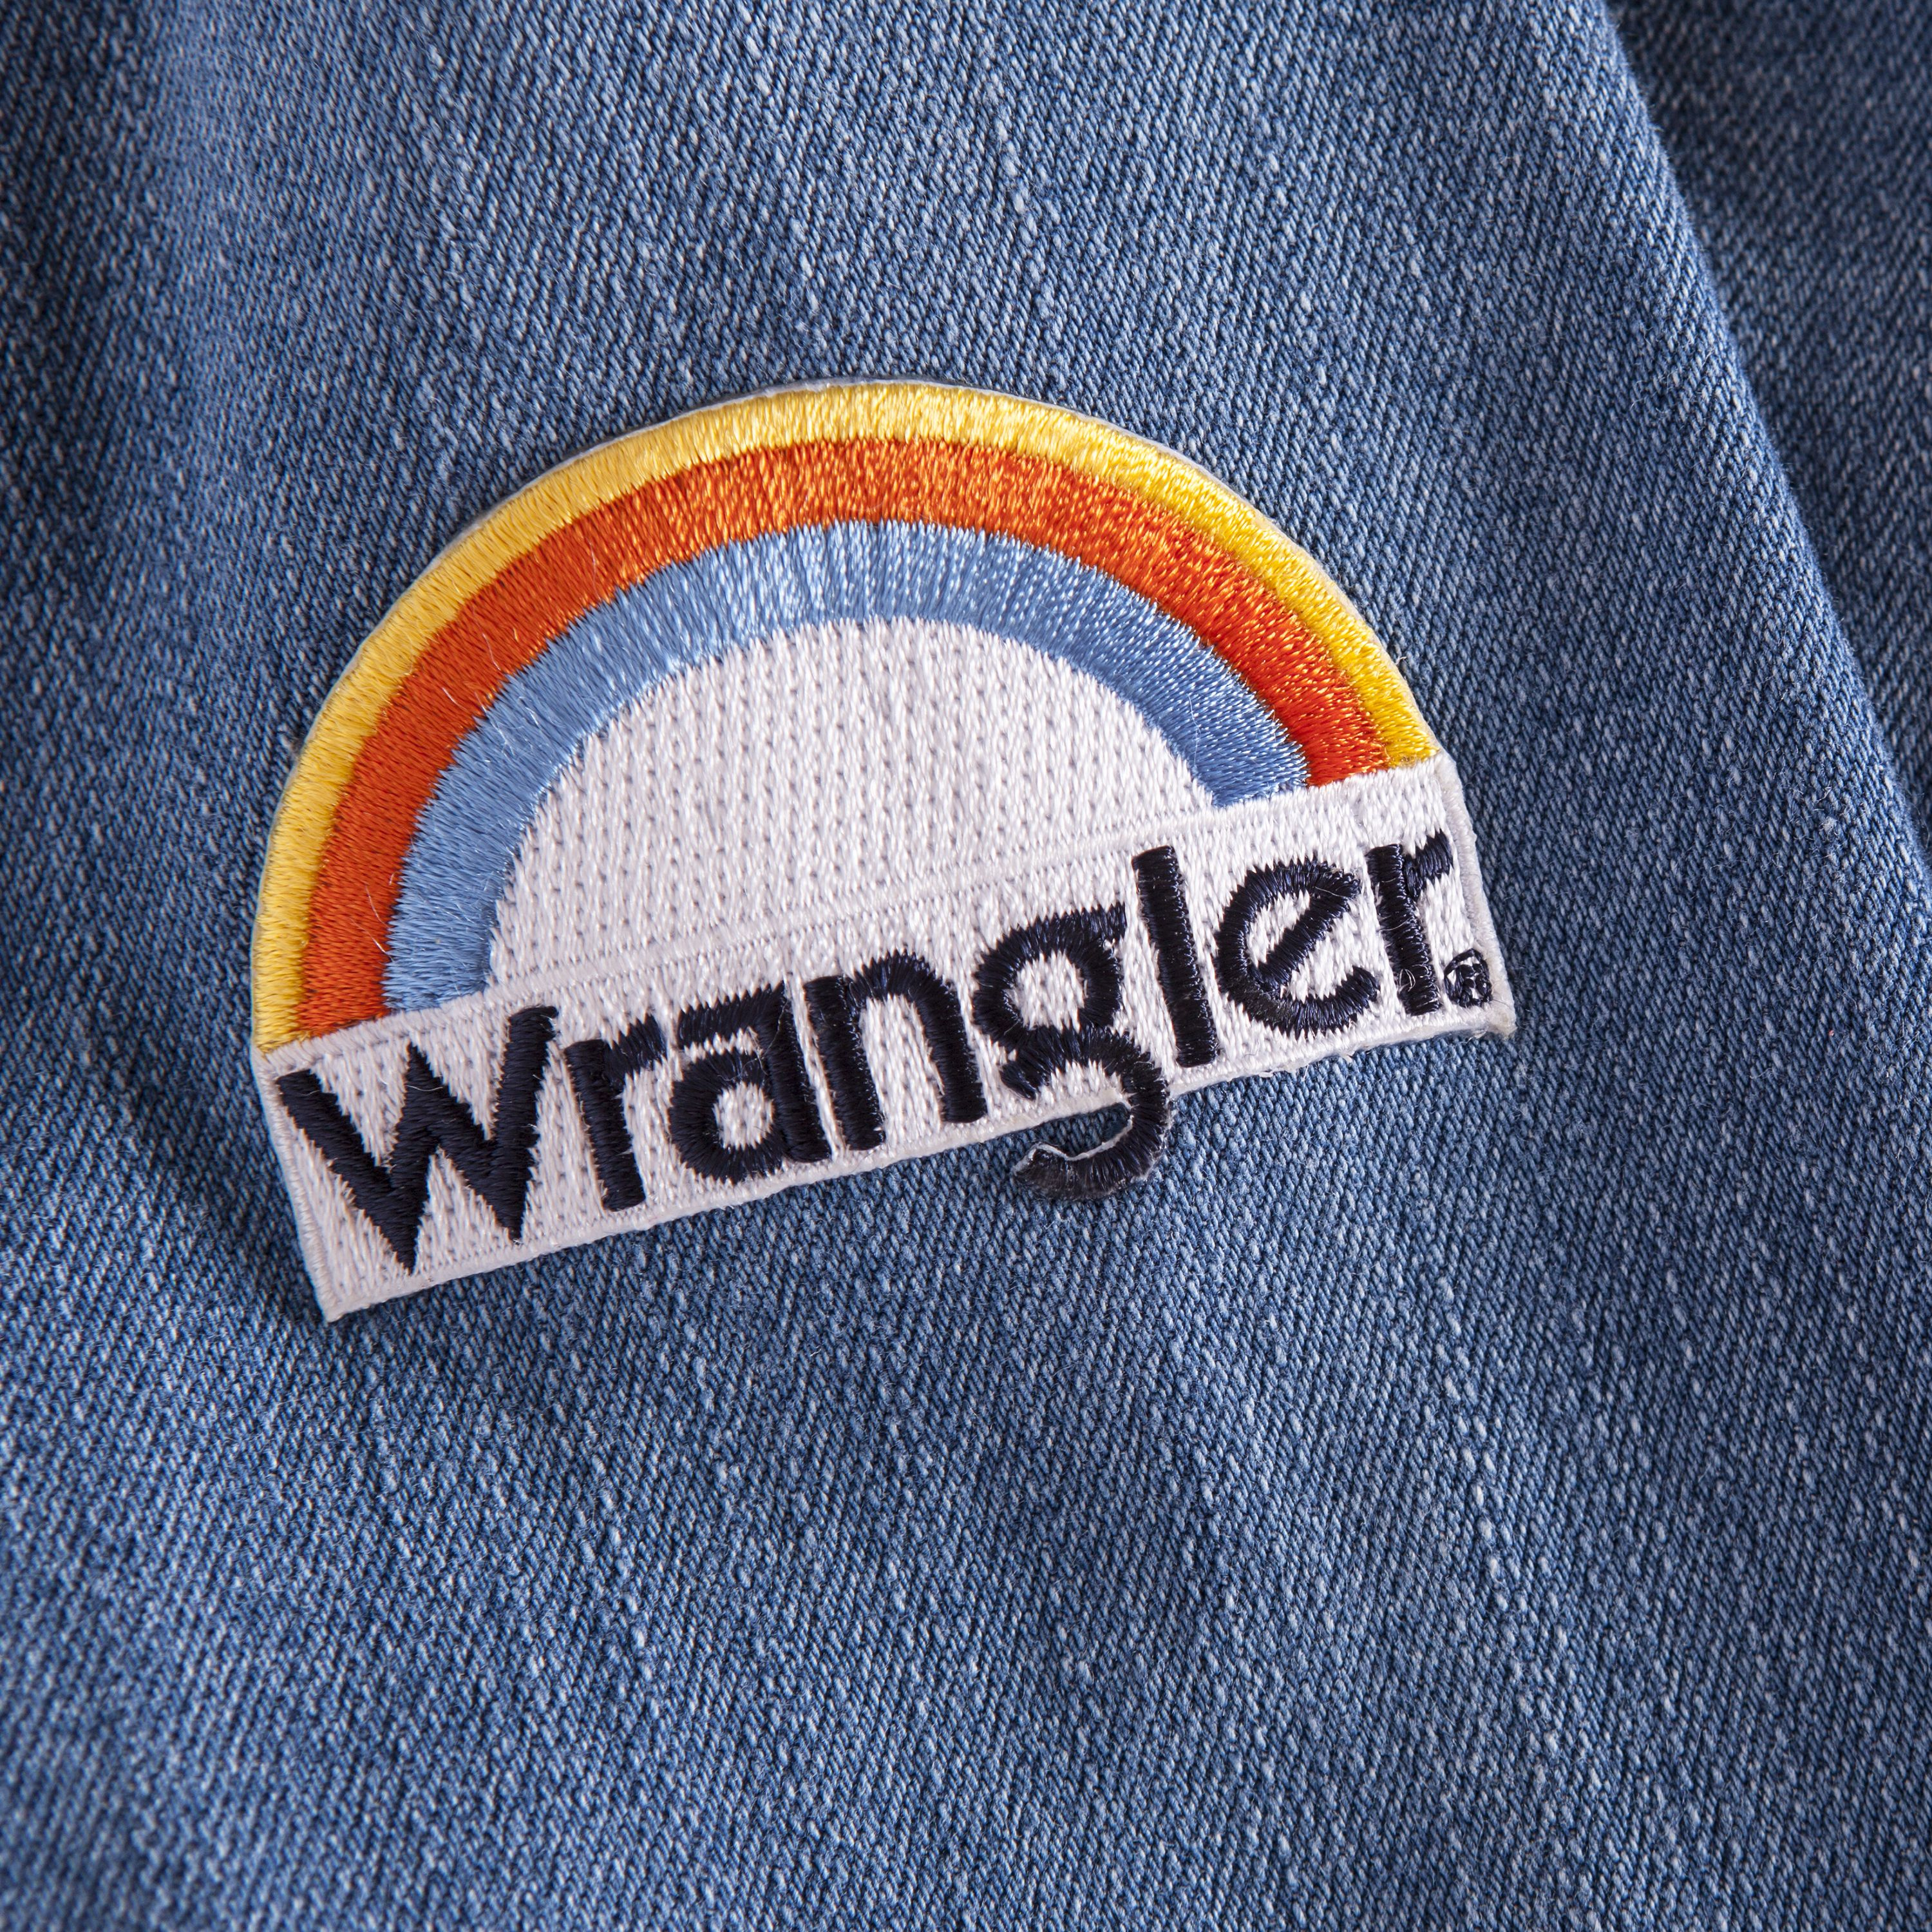 facc7ad6 Rainbow Patch   Wrangler Pins and Patches   Patches, Vintage patches ...